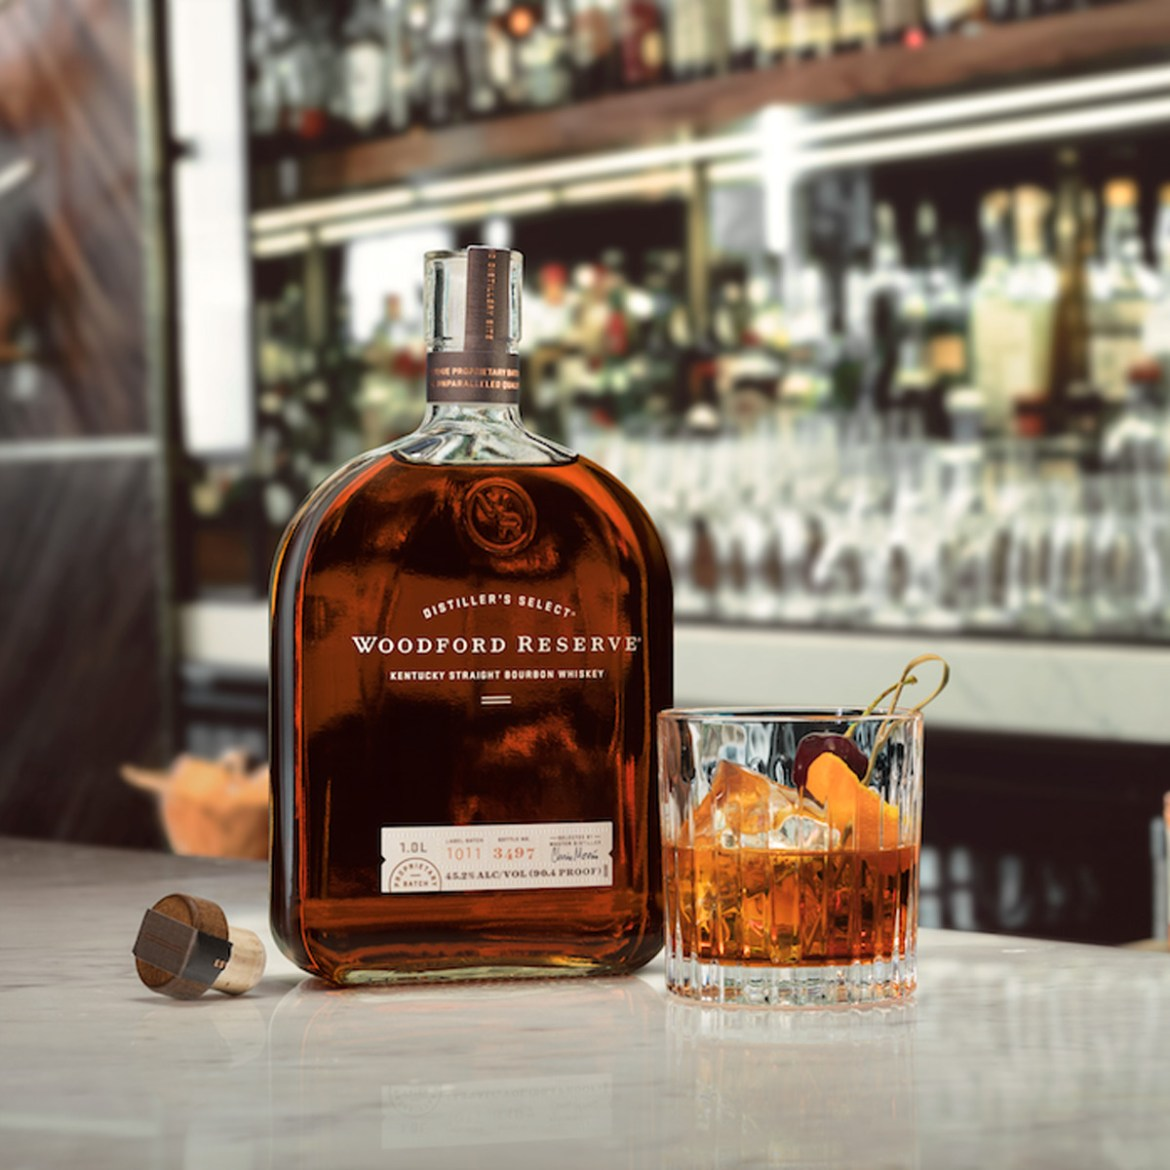 bottle of Woodford Reserve with a glass